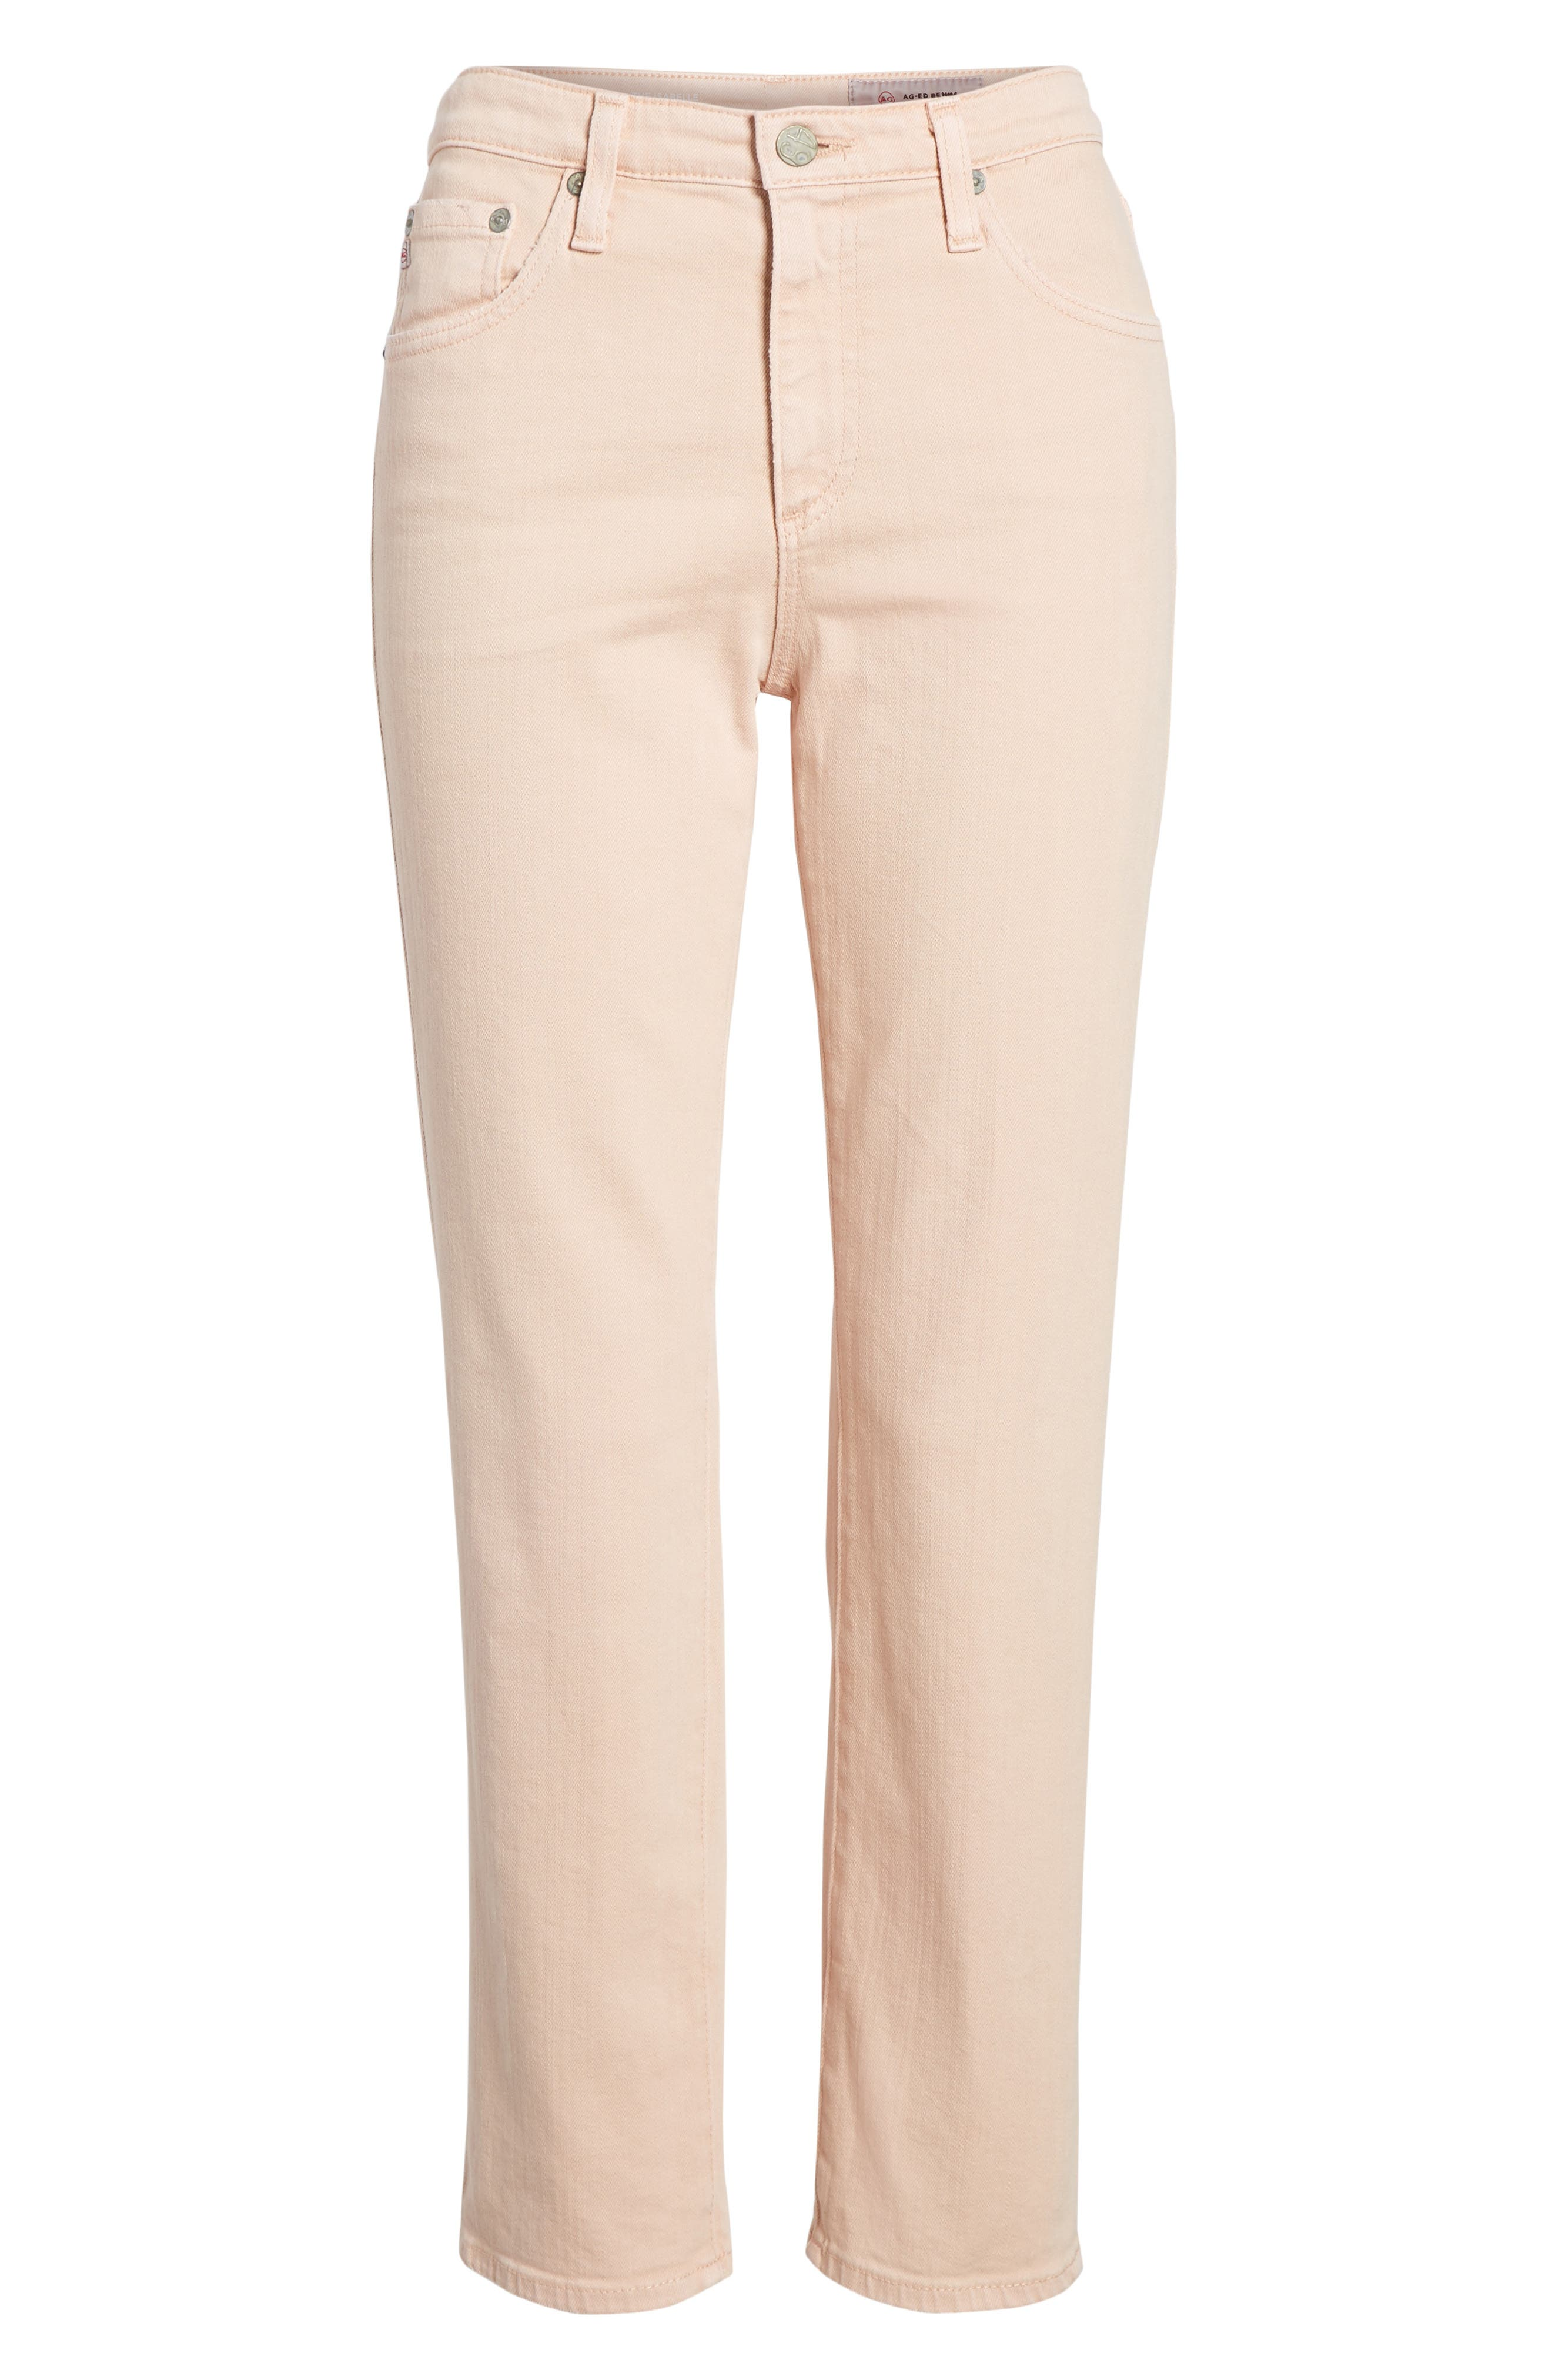 The Isabelle High Waist Crop Straight Leg Jeans,                             Alternate thumbnail 7, color,                             1 YEAR SULFUR ROSY ROGUE